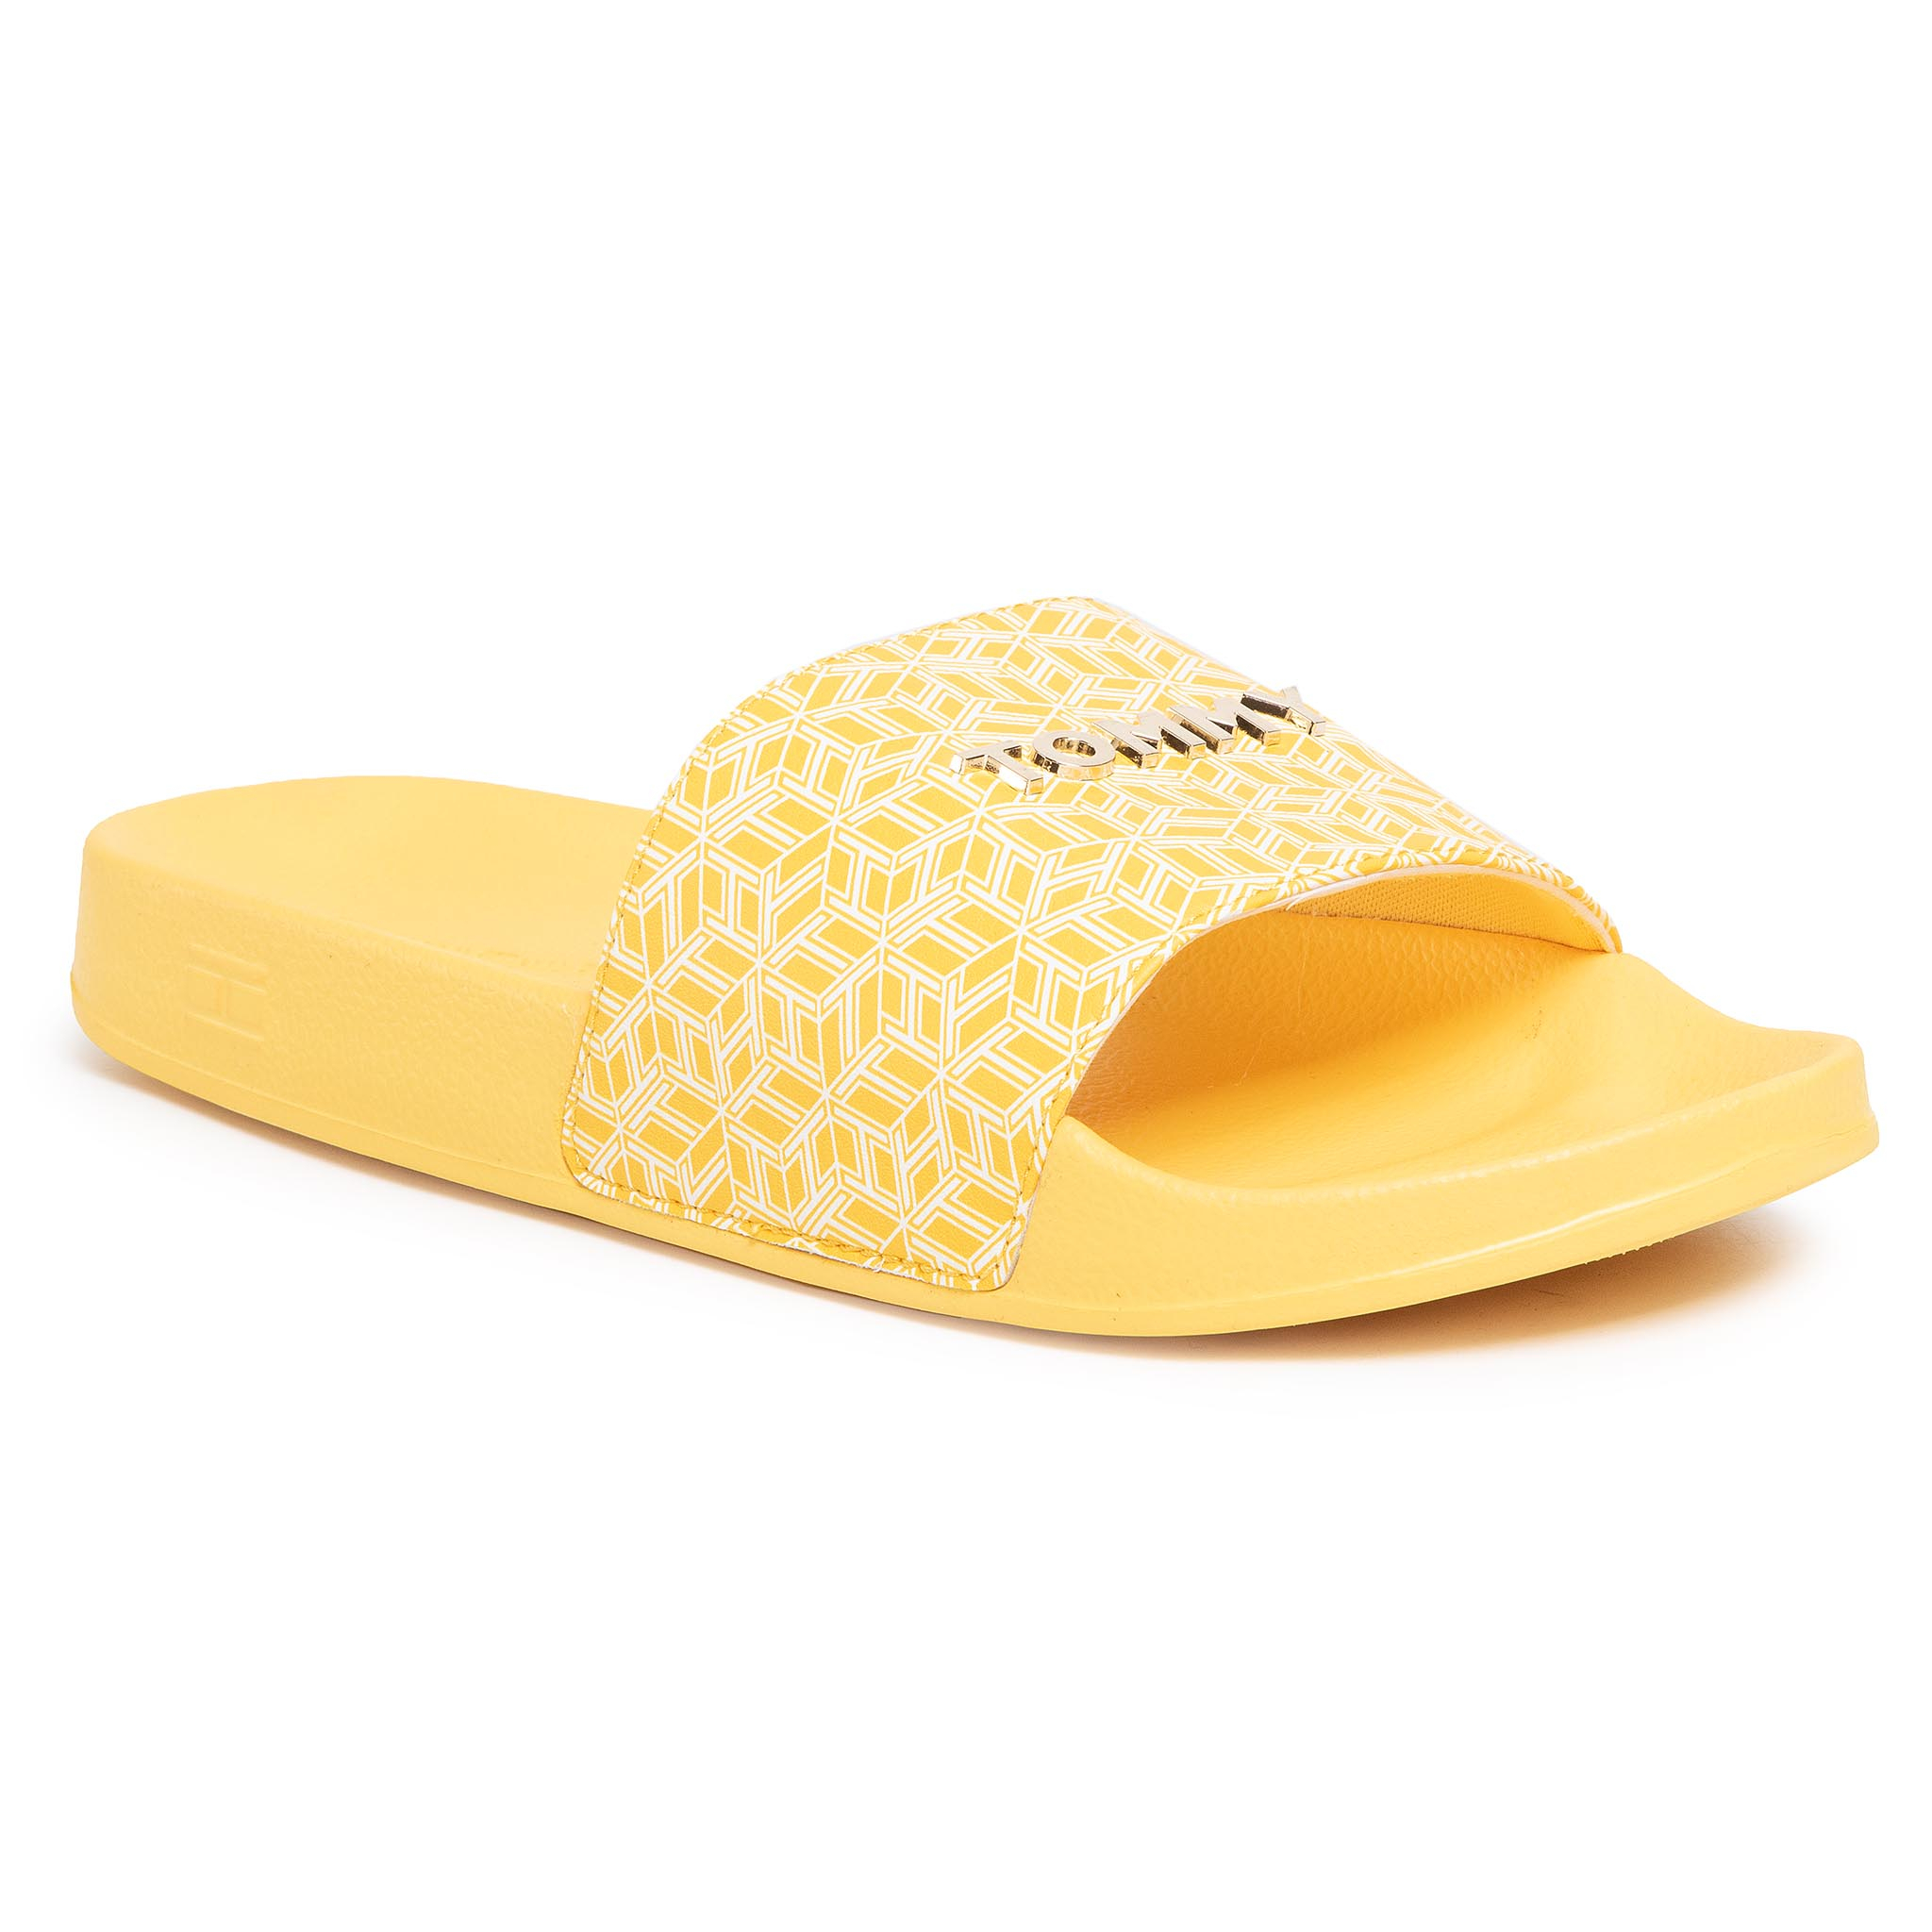 Șlapi TOMMY HILFIGER - Th Monogram Allover Pool Slide FW0FW04813 Sunny ZEK